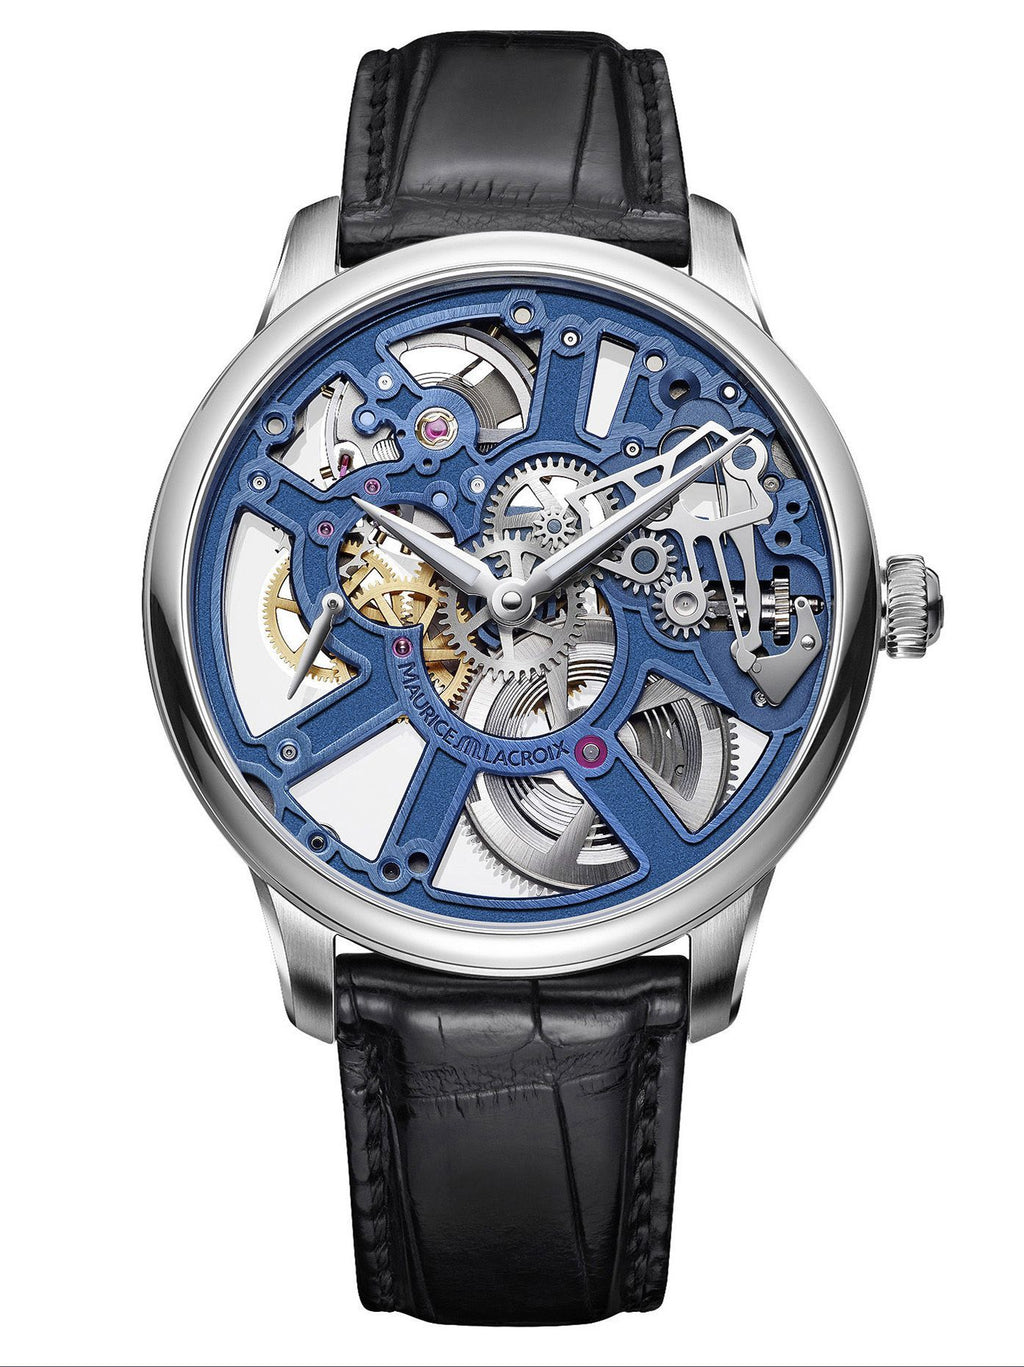 MASTERPIECE SKELETON 43 mm - MP7228-SS001-004-1